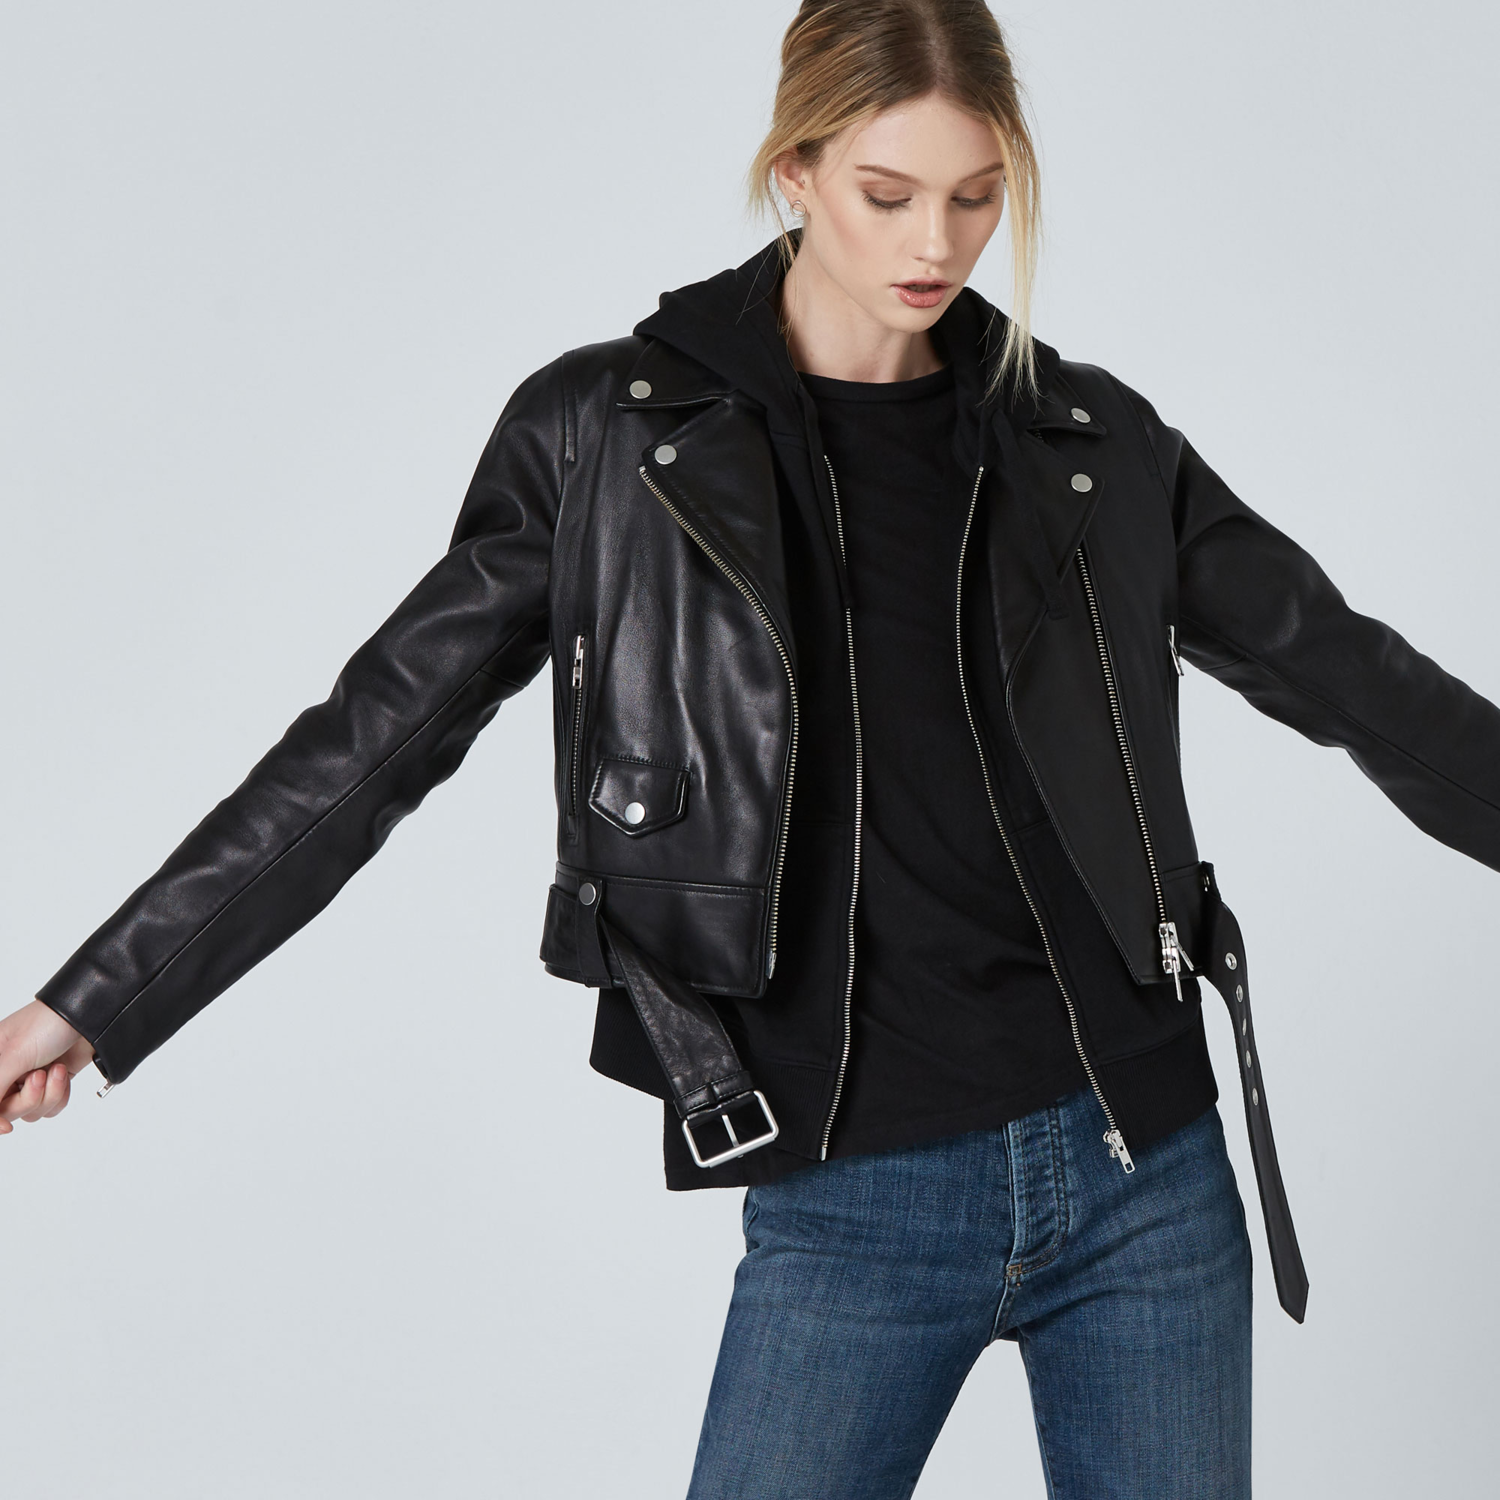 6e6dfd0006e5b Womens Leather Biker Jacket In Black $375 | DSTLD